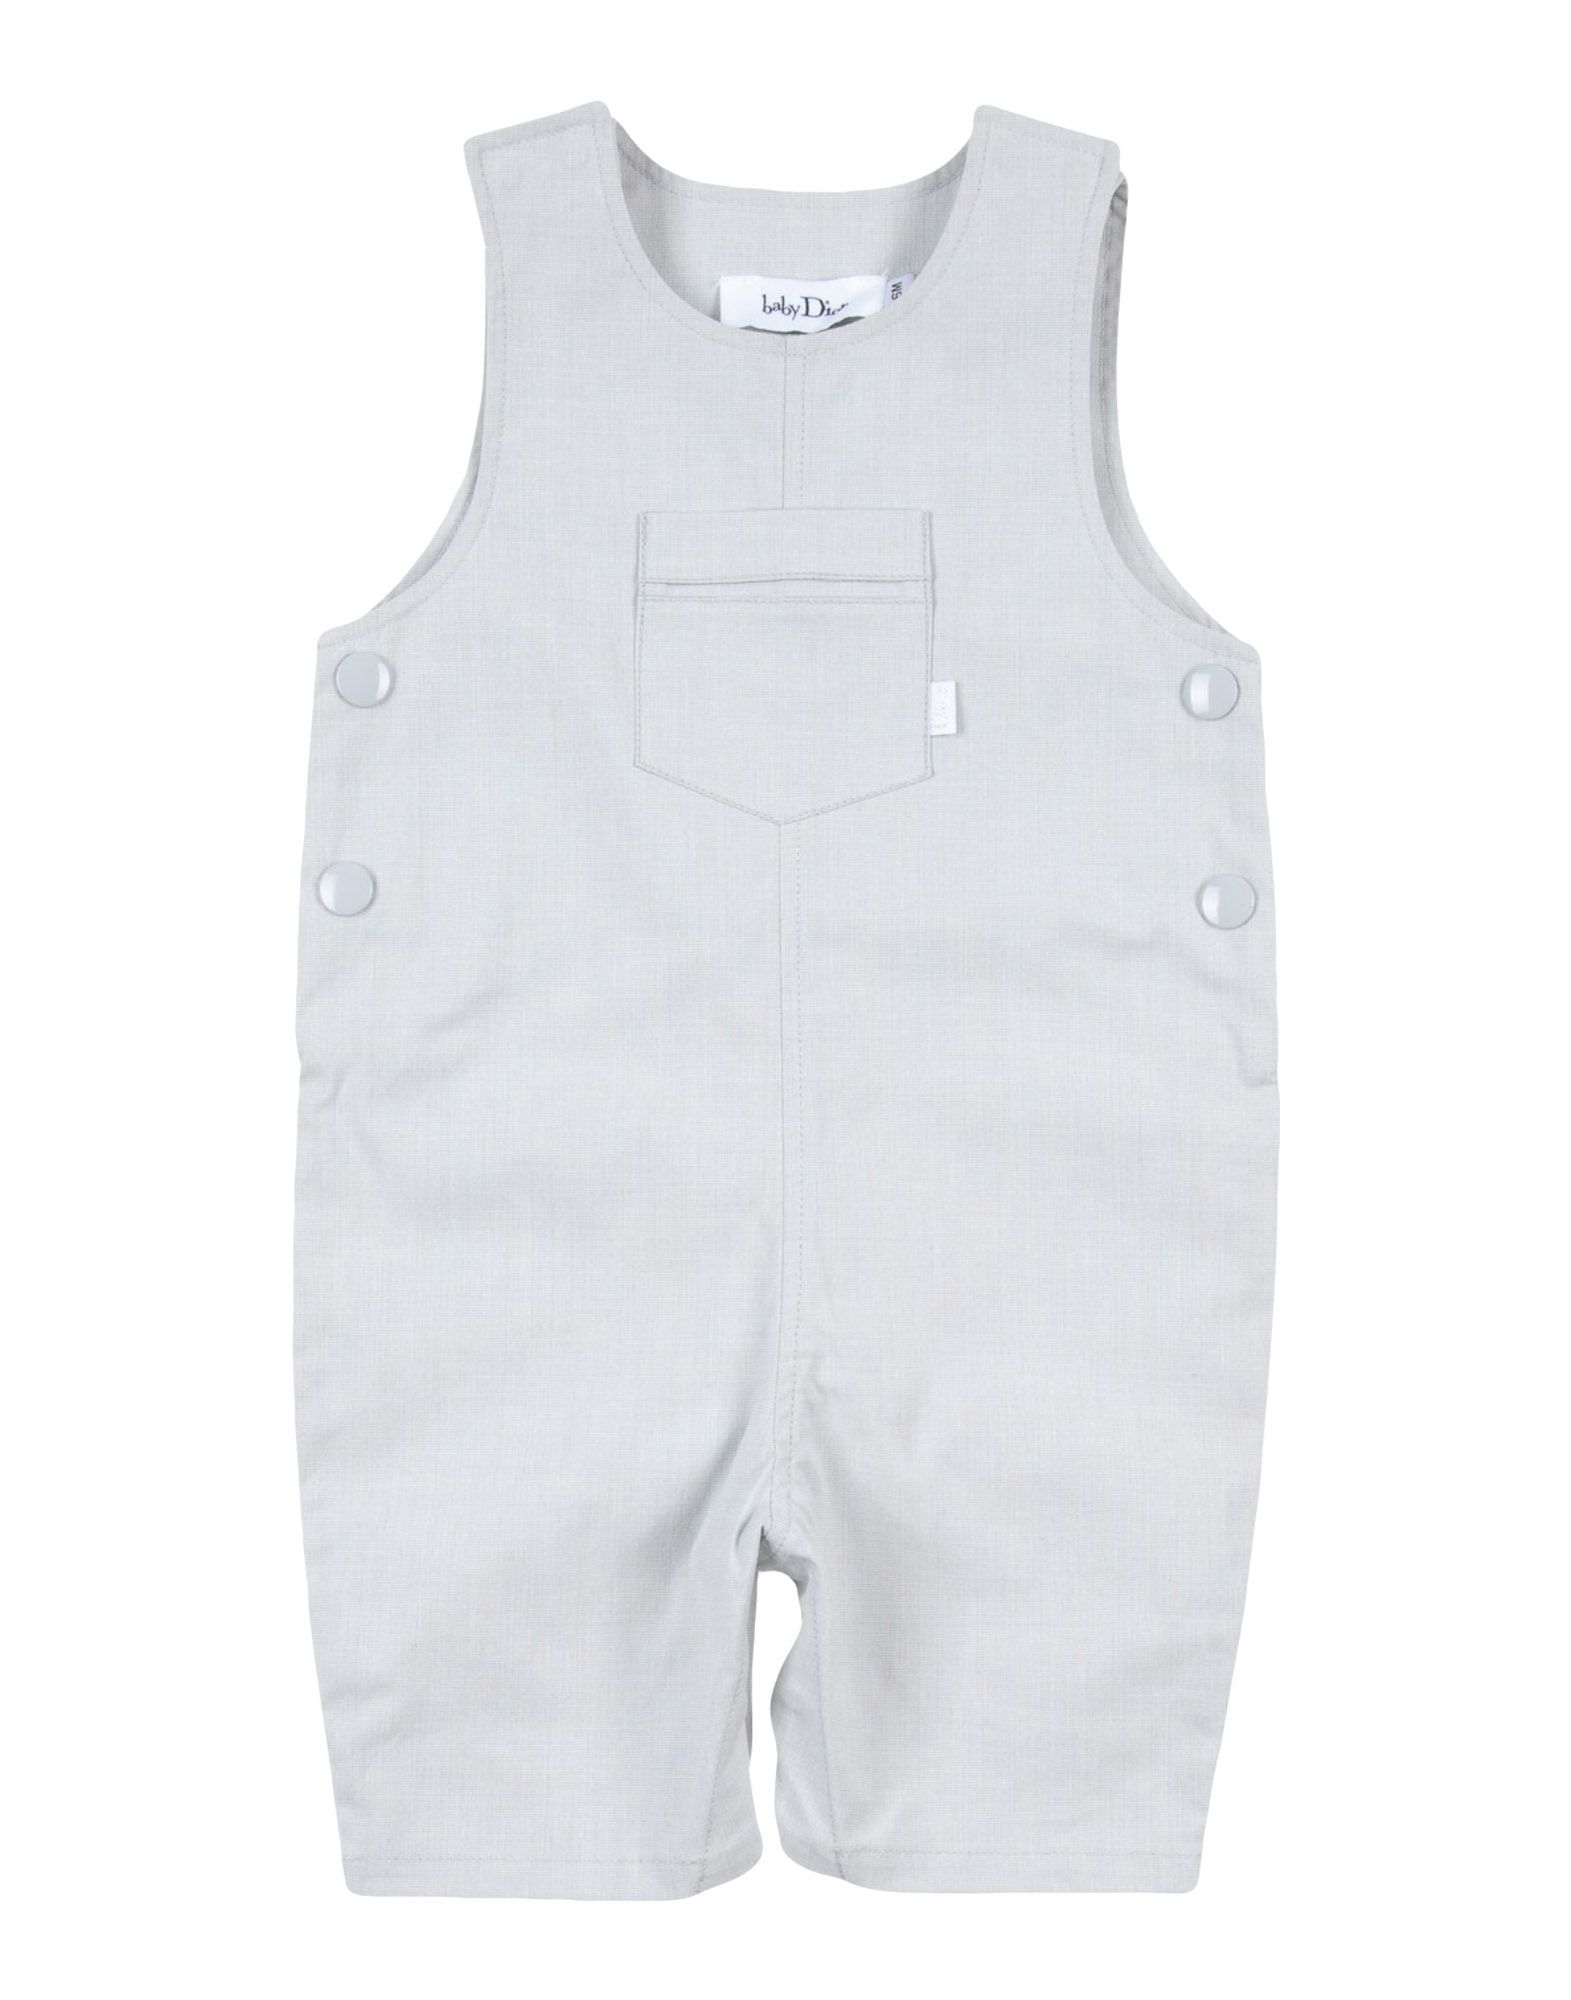 Baby Dior clothing for baby girl & toddler 0 24 months